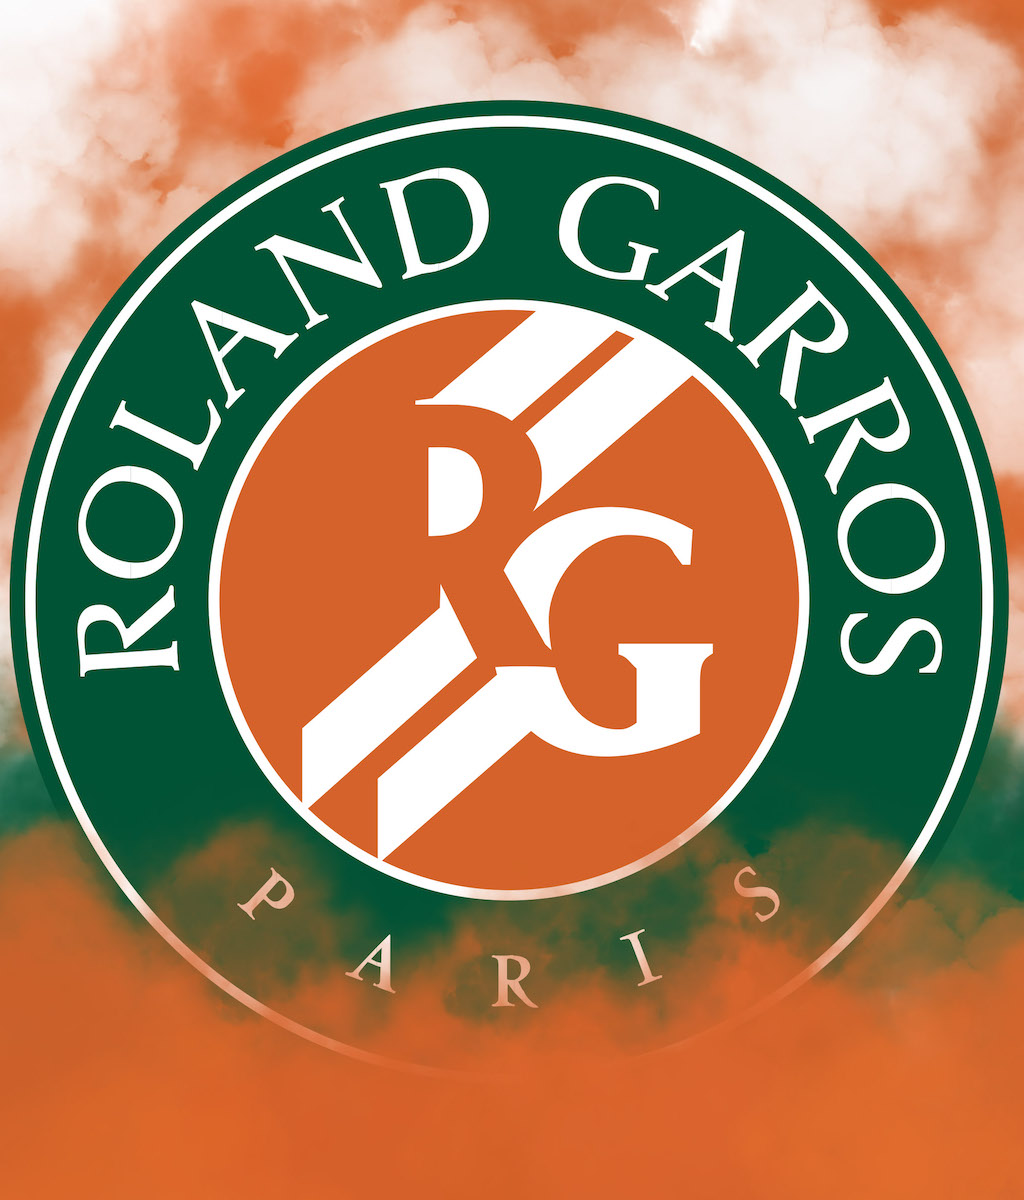 Rolland.Garros.2016.Womens.Quarterfinals.S.Williams.vs.Putintseva.2160p.UHDTV.DD.5.1.HEVC